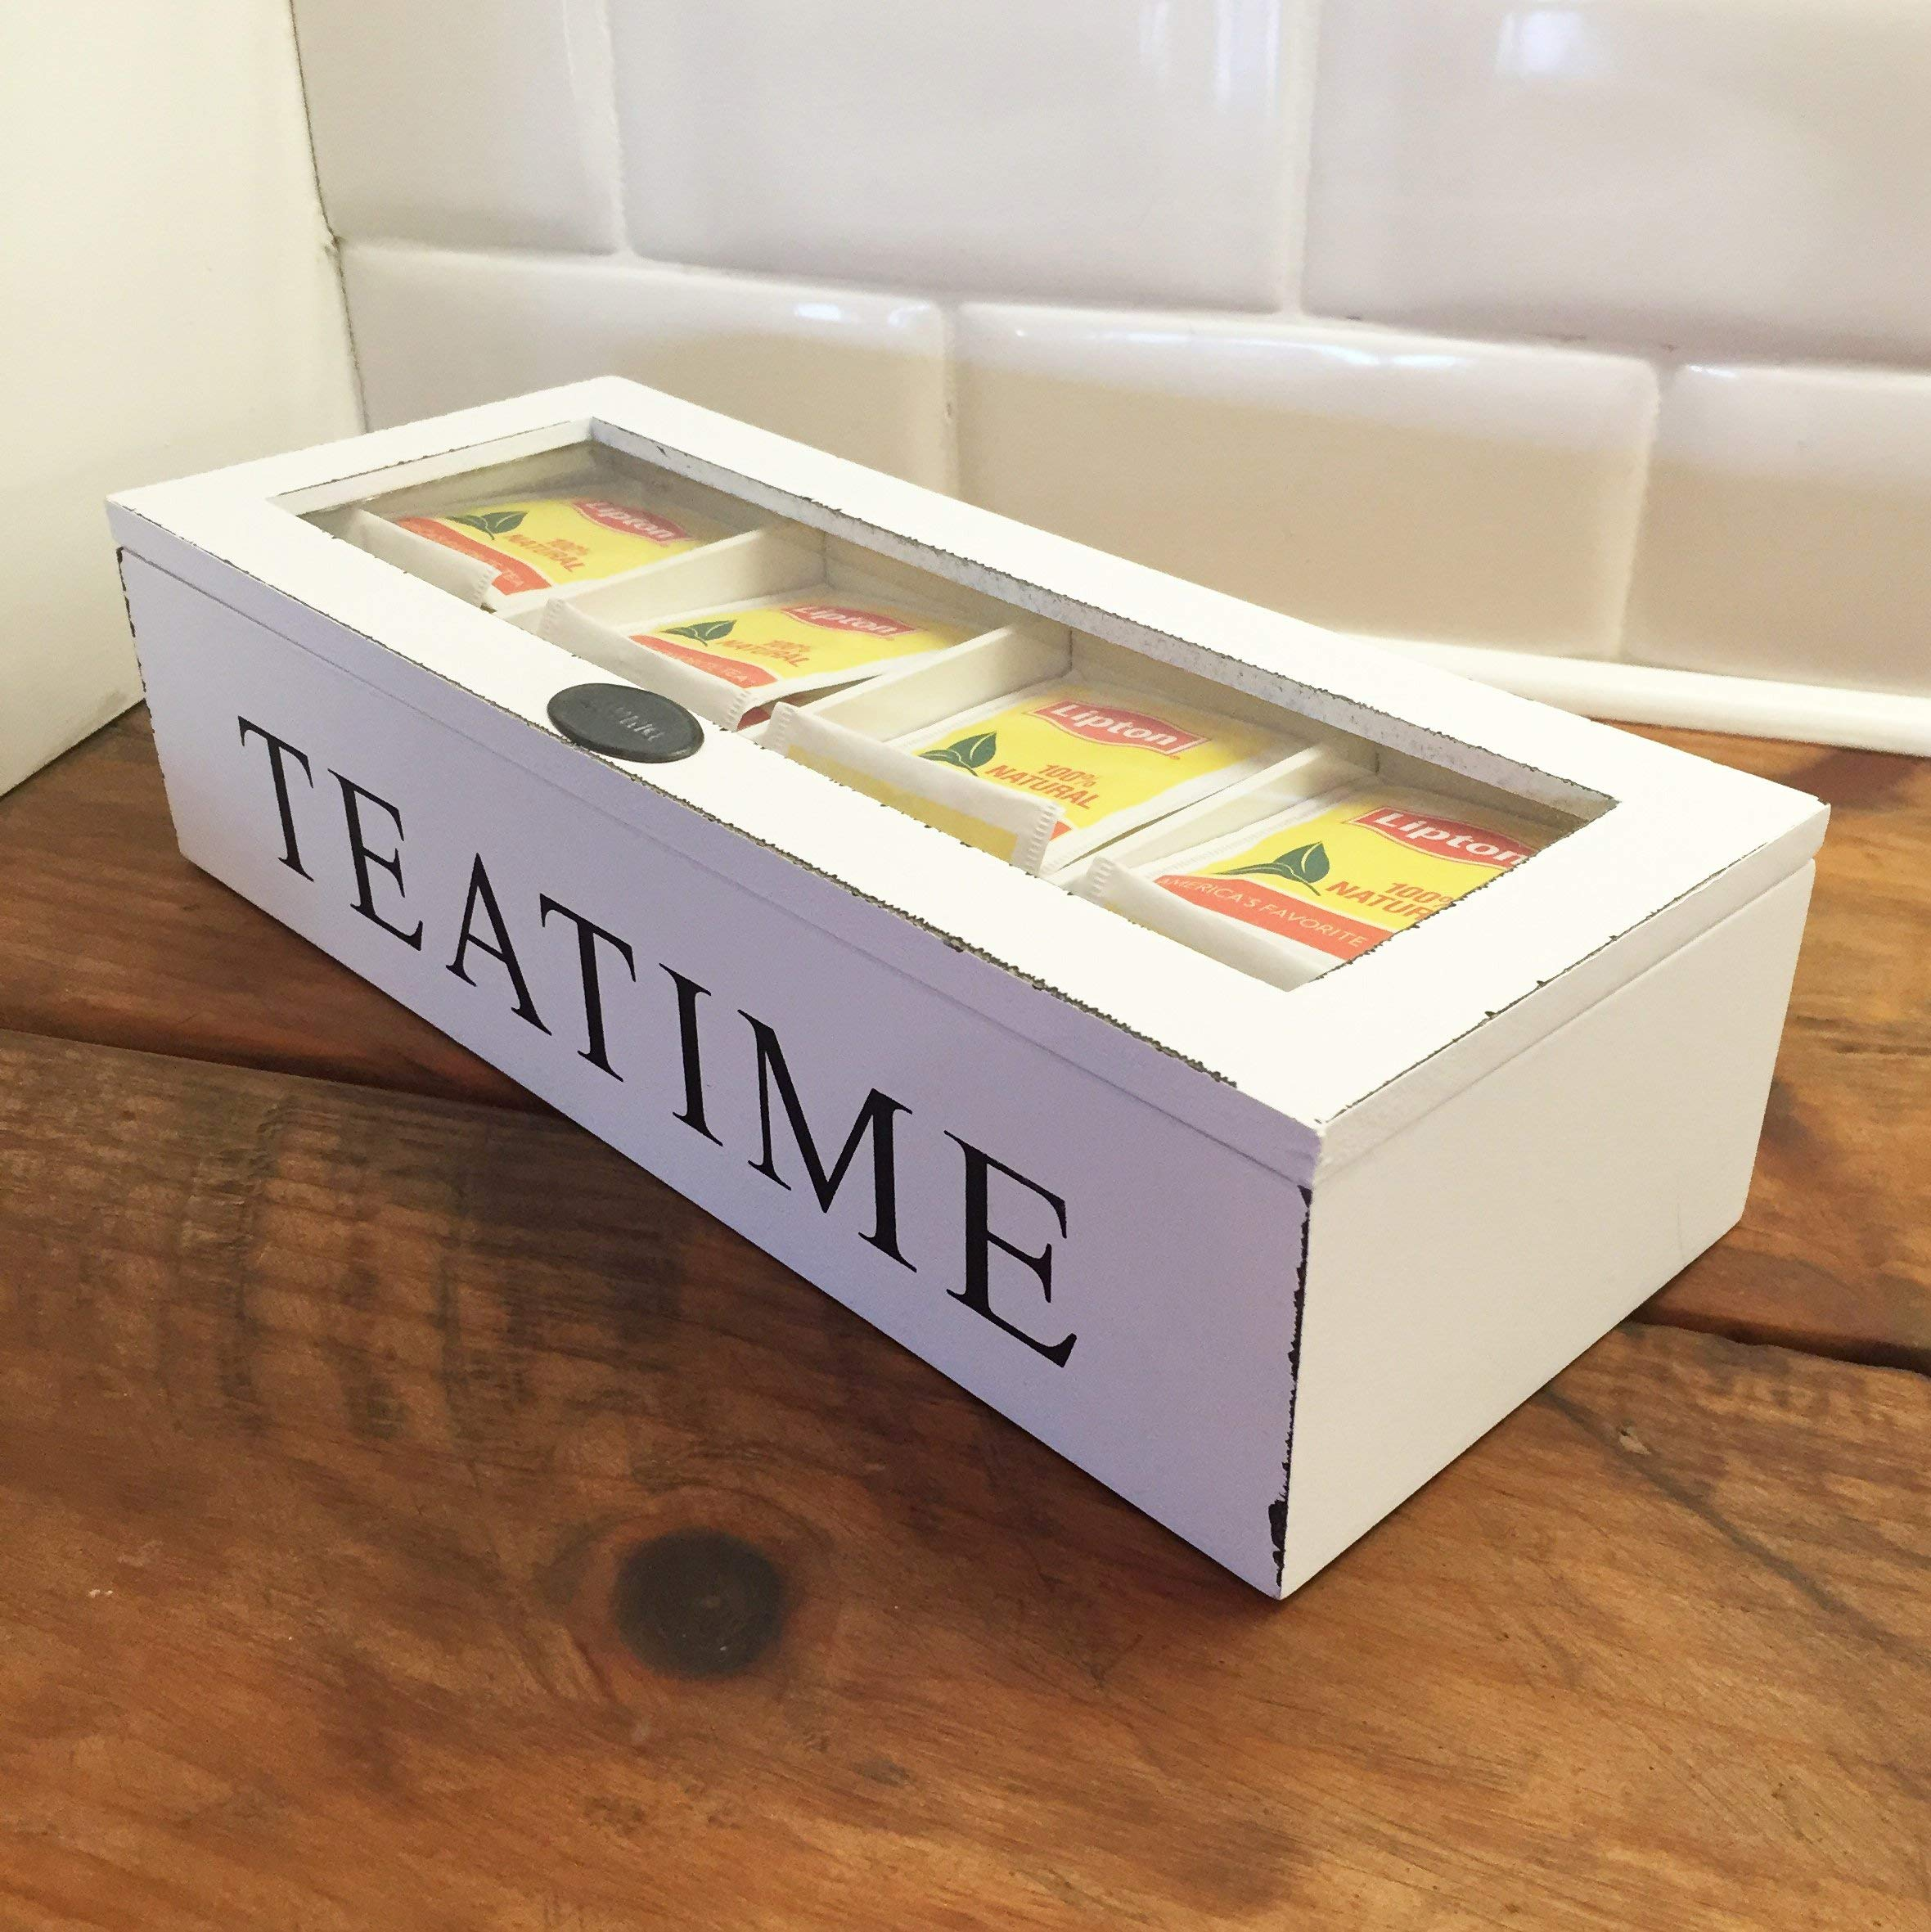 Whole House Worlds, Tea Time Chest, 10 3/4 x 4 1/4 x 2 3/4 Inches, Distressed Wood, Glass Top, 4 Compartments, Rustic White by Whole House Worlds (Image #5)